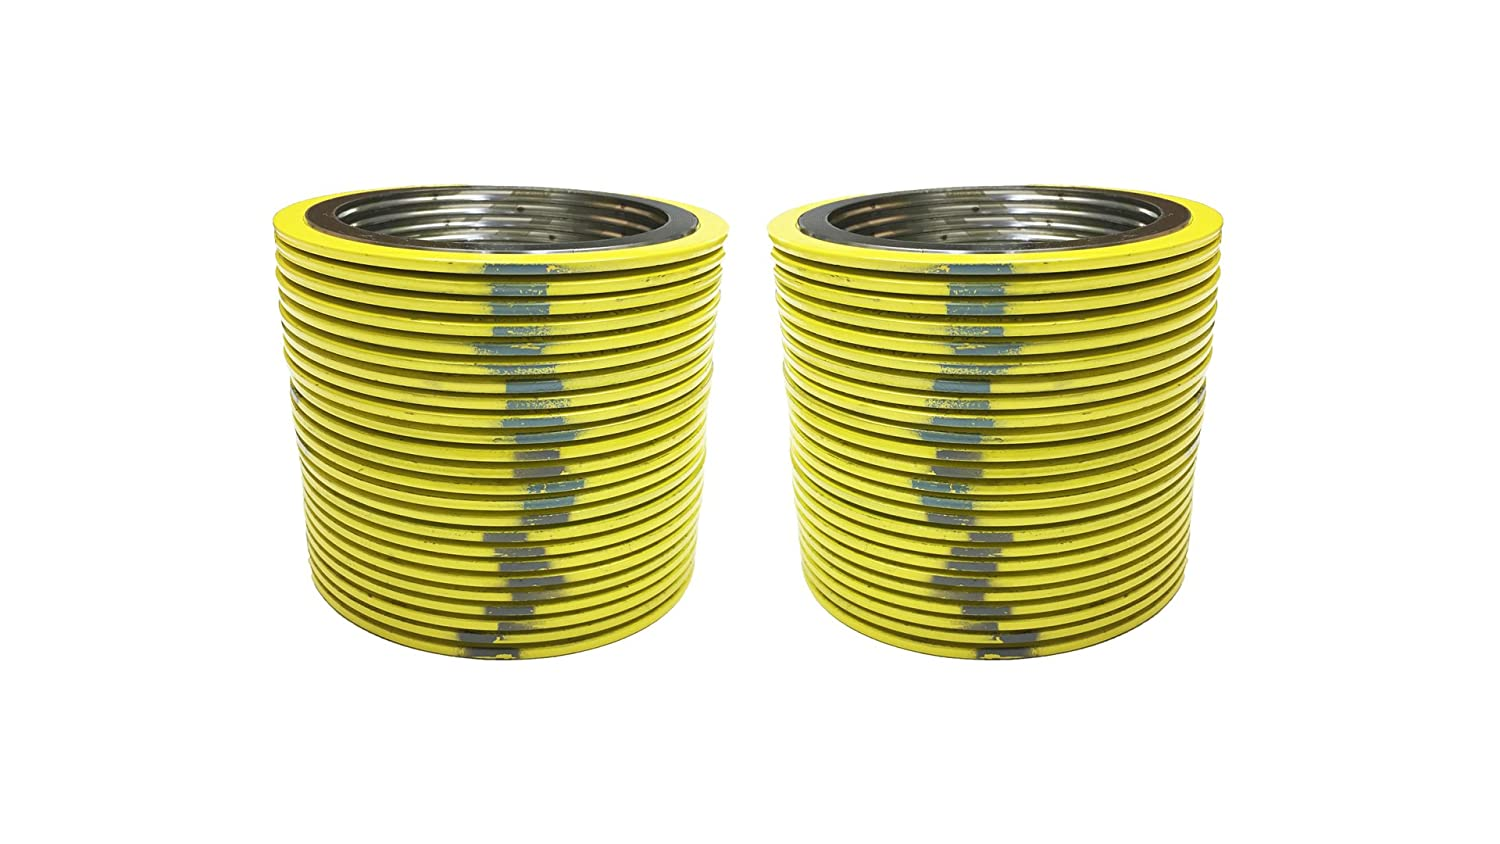 Sterling Seal 9000IR14304GR300X12 304 Stainless Steel Spiral Wound Gasket with 304SS Inner Ring and Flexible Graphite Filler Pack of 12 of NJ for 14 Pipe Supplied by Sur-Seal Inc Pressure Class 300# Yellow with Grey Stripe for 14 Pipe